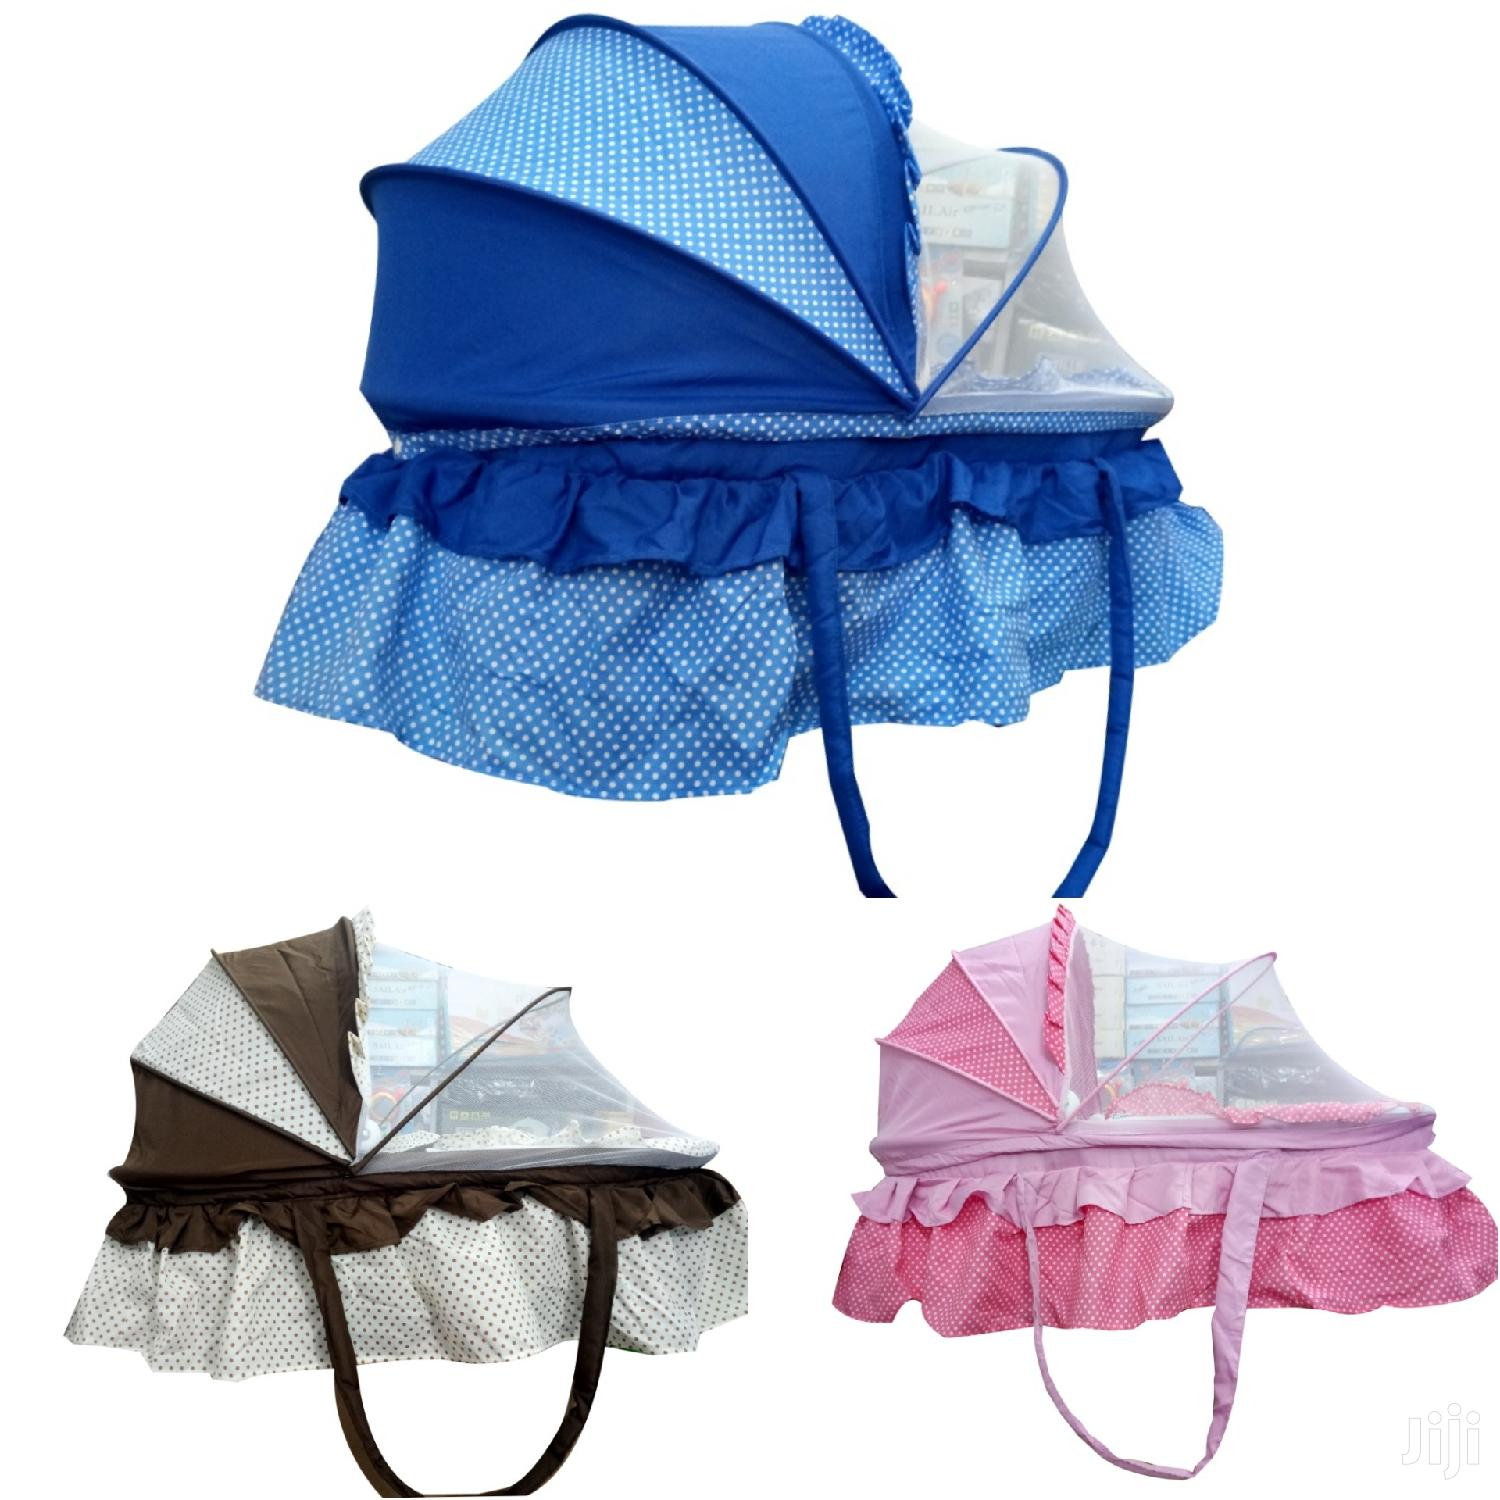 New Born Baby's Travel Foldable Bed